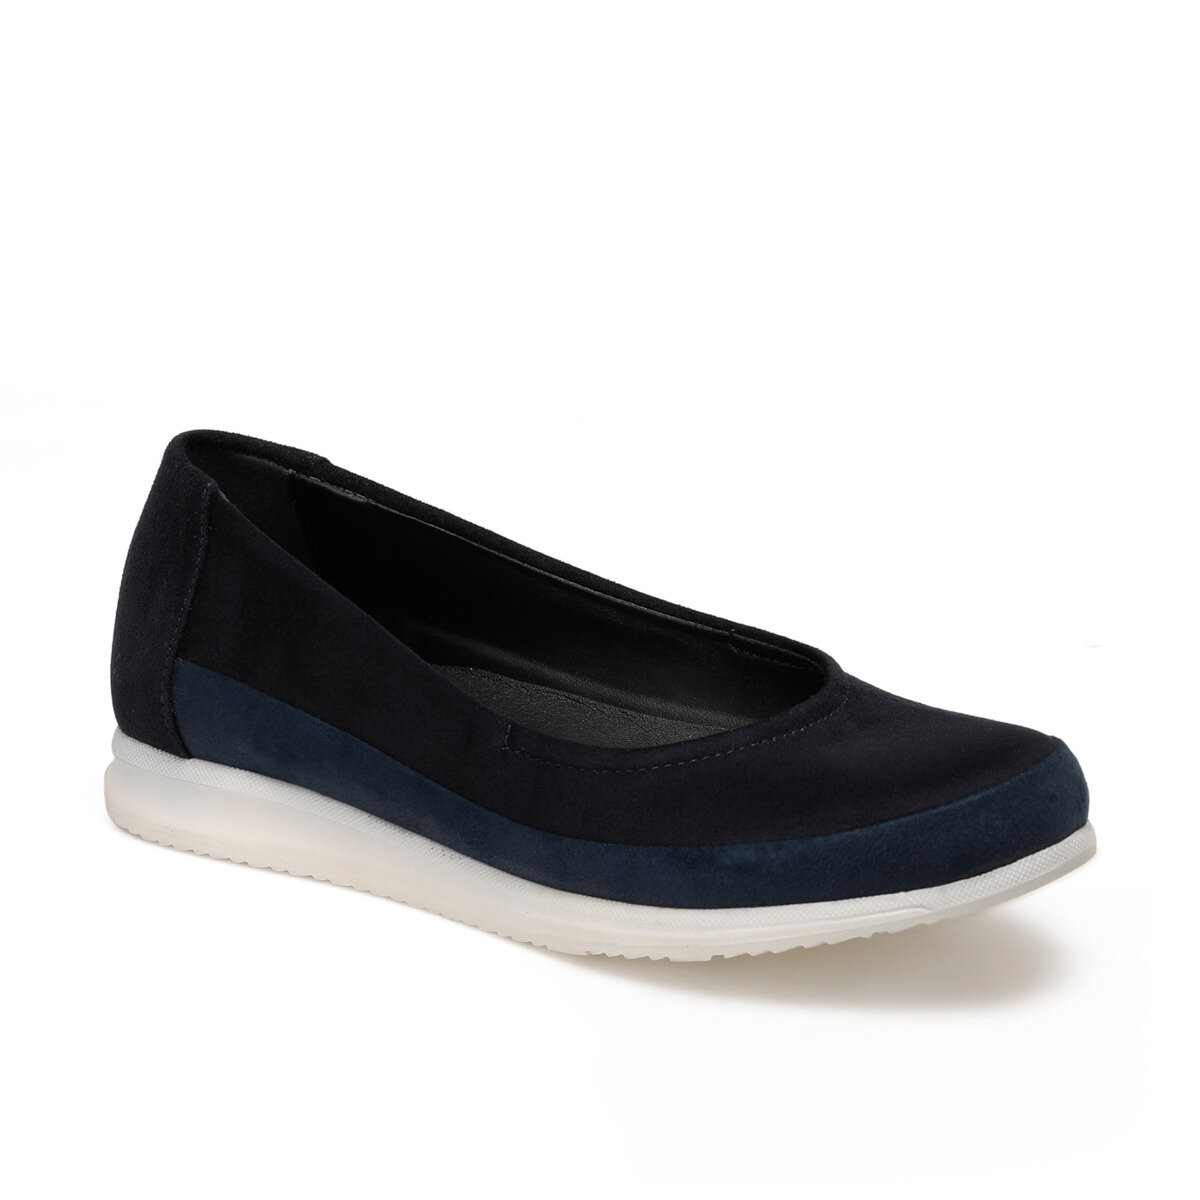 FLO TRV8201 Navy Blue Women 'S Shoes Polaris